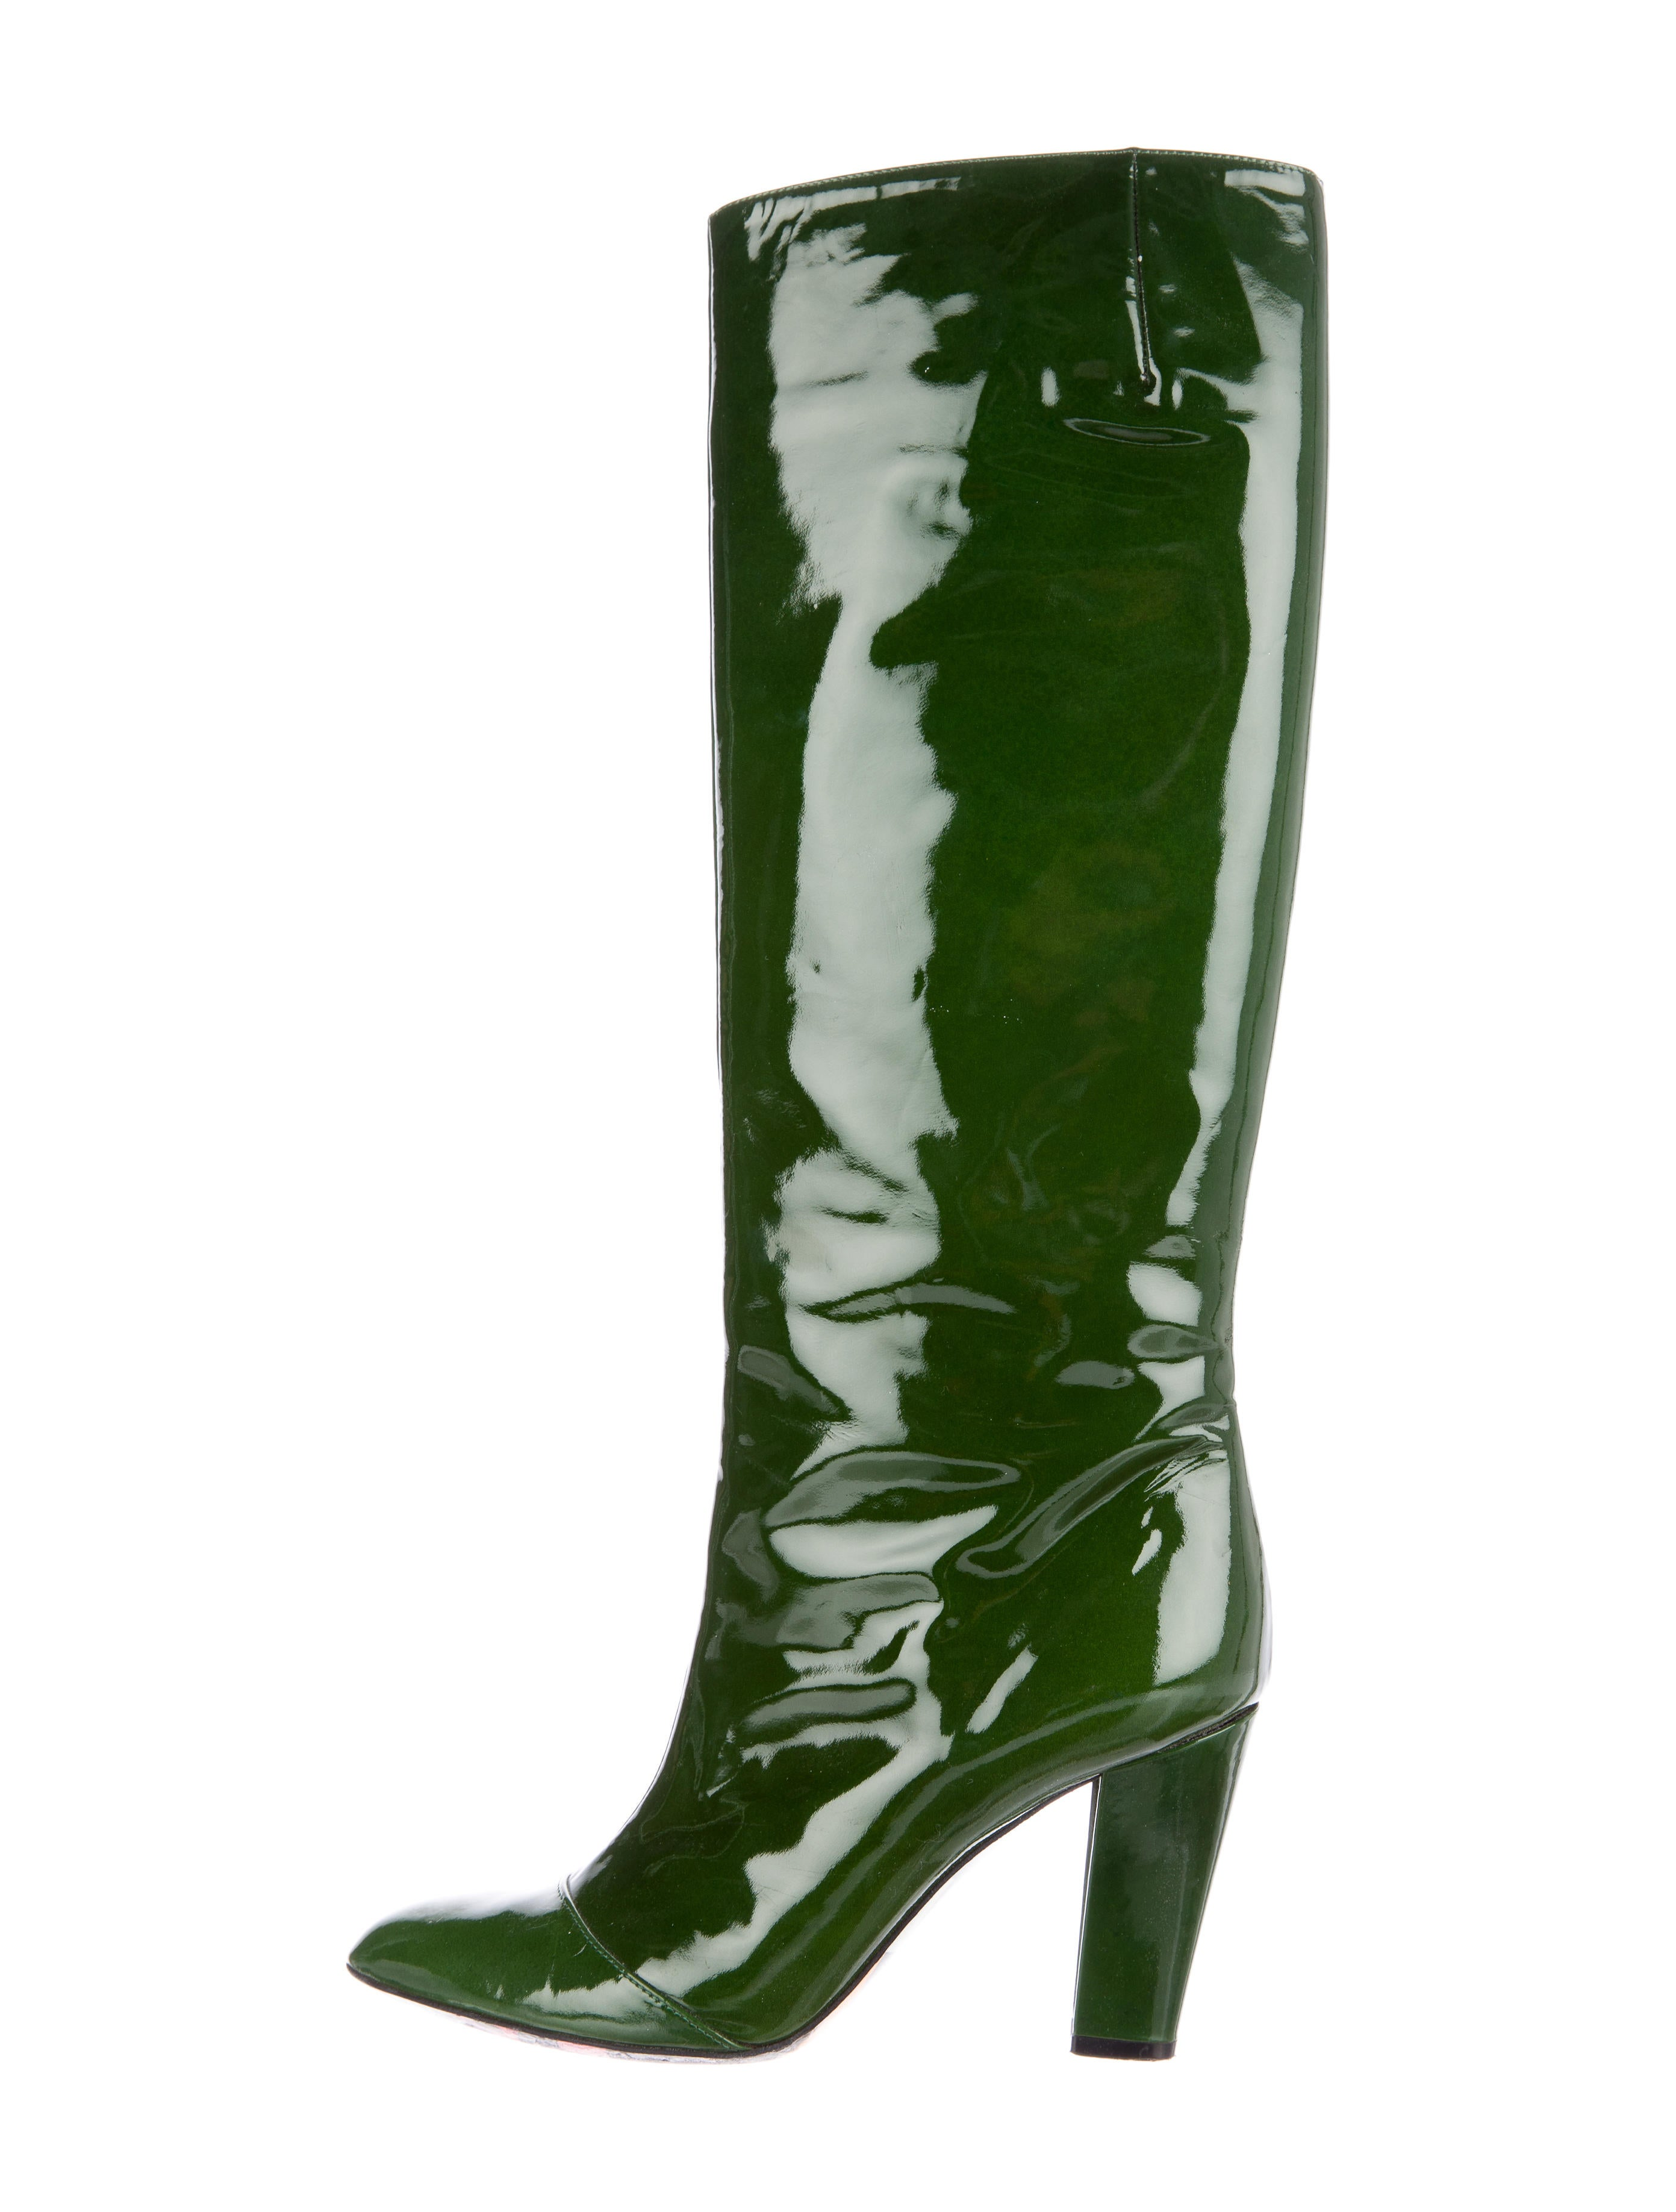 7ec20937bc1 Emilio Pucci Patent Leather Knee-High Boots - Shoes - EMI32310 | The ...